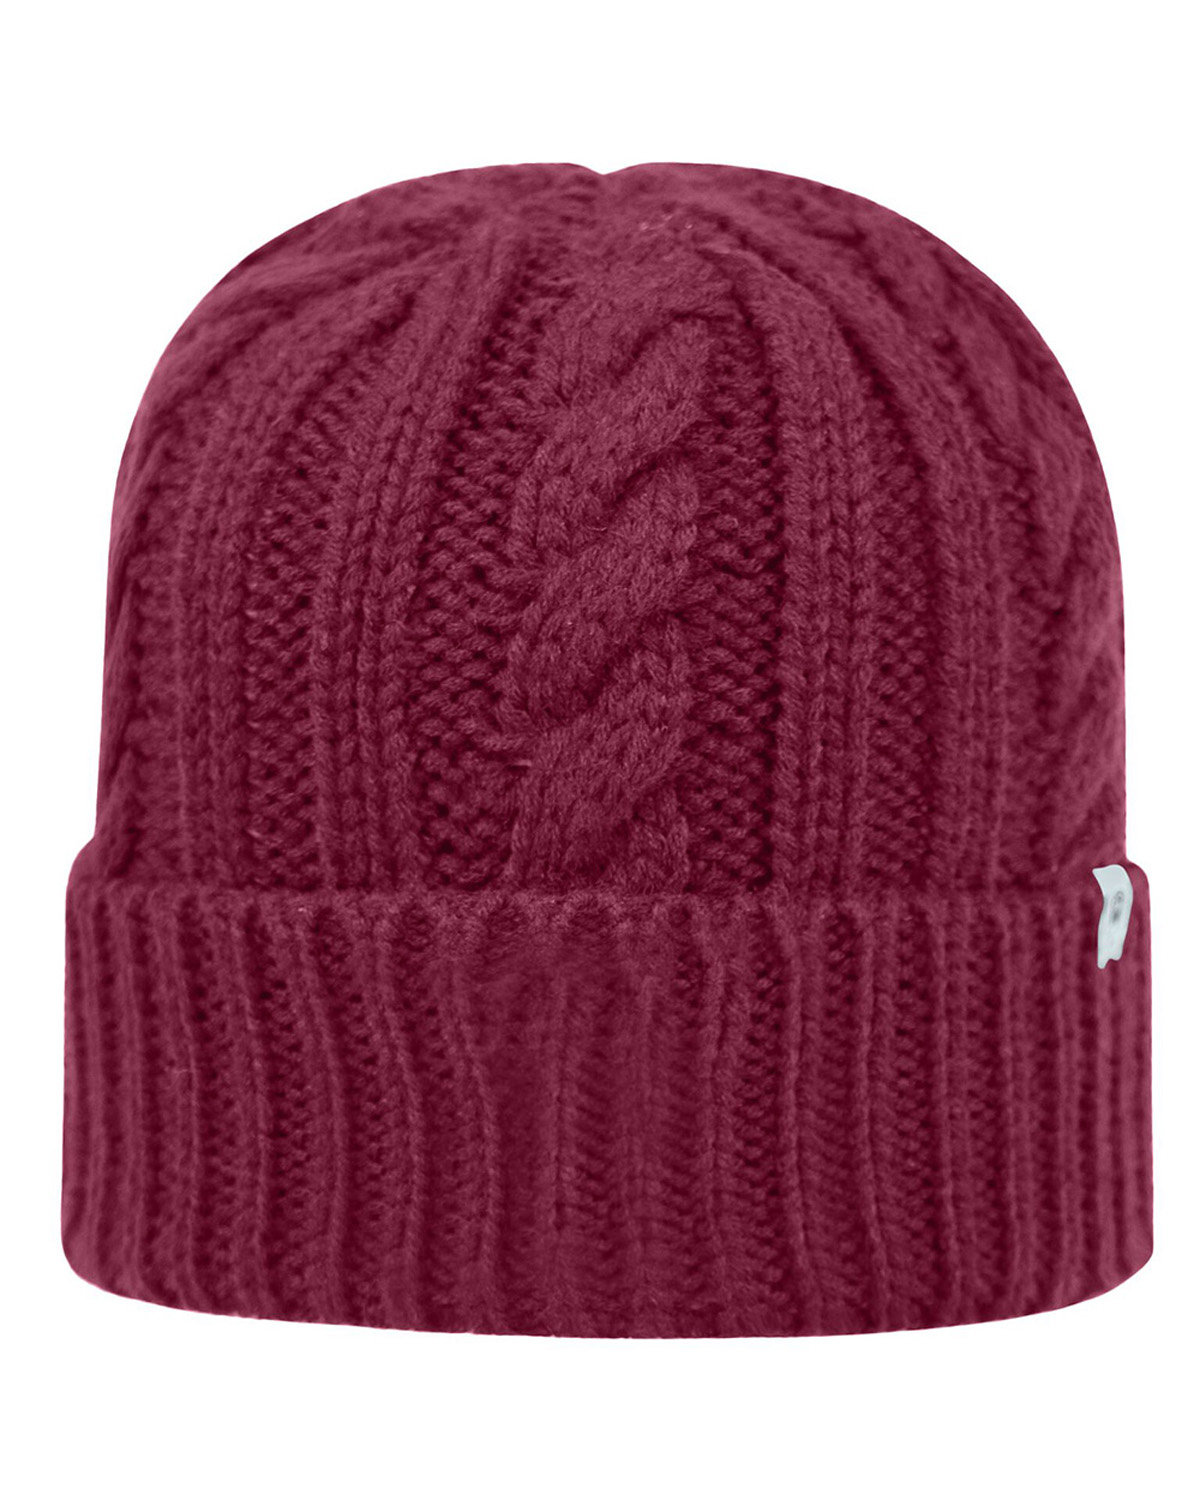 Top Of The World Adult Empire Knit Cap BURGUNDY